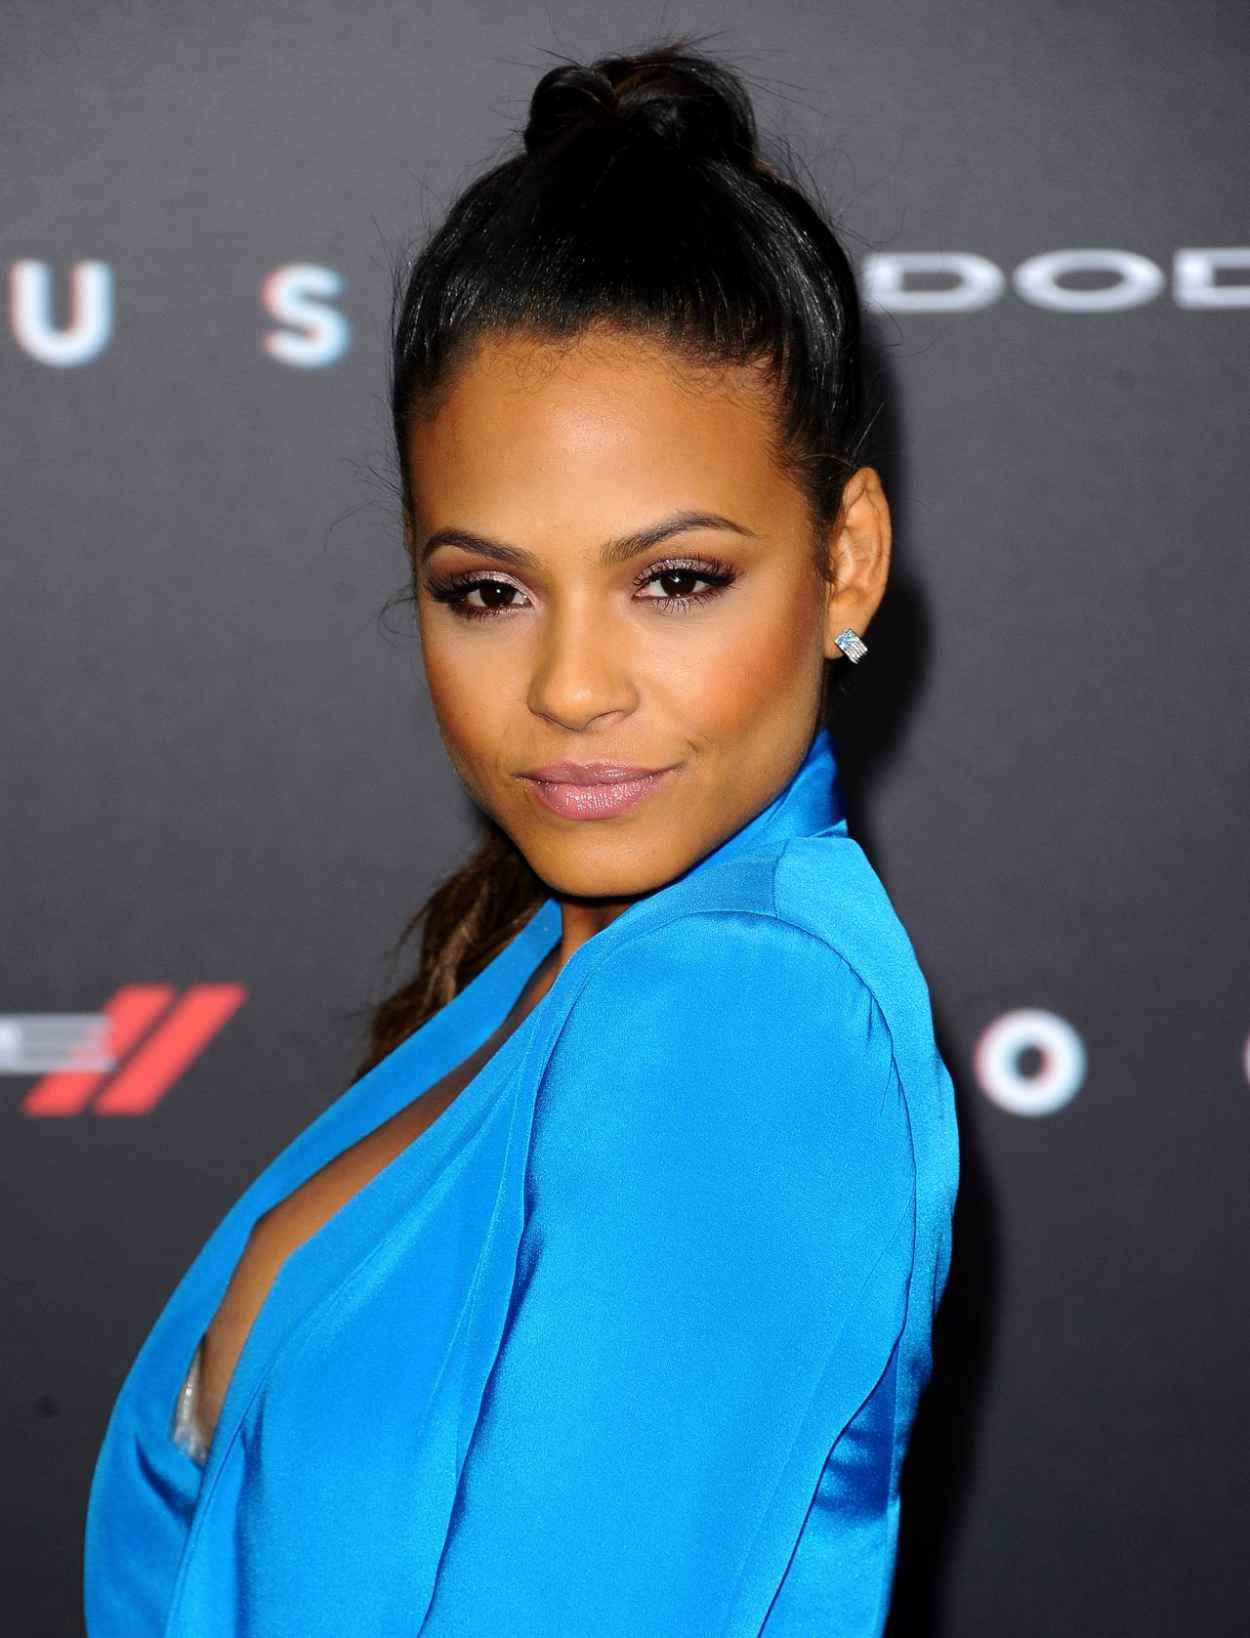 christina milian dip it low mp3christina milian instagram, christina milian dip it low, christina milian believer, christina milian say i, christina milian am to pm, christina milian dip it low mp3, christina milian us against the world, christina milian обувь, christina milian 2016, christina milian 2017, christina milian like me скачать, christina milian believer скачать, christina milian фото, christina milian do it, christina milian turned up, christina milian 2004, christina milian 2001, christina milian wikipedia, christina milian new, christina milian itunes